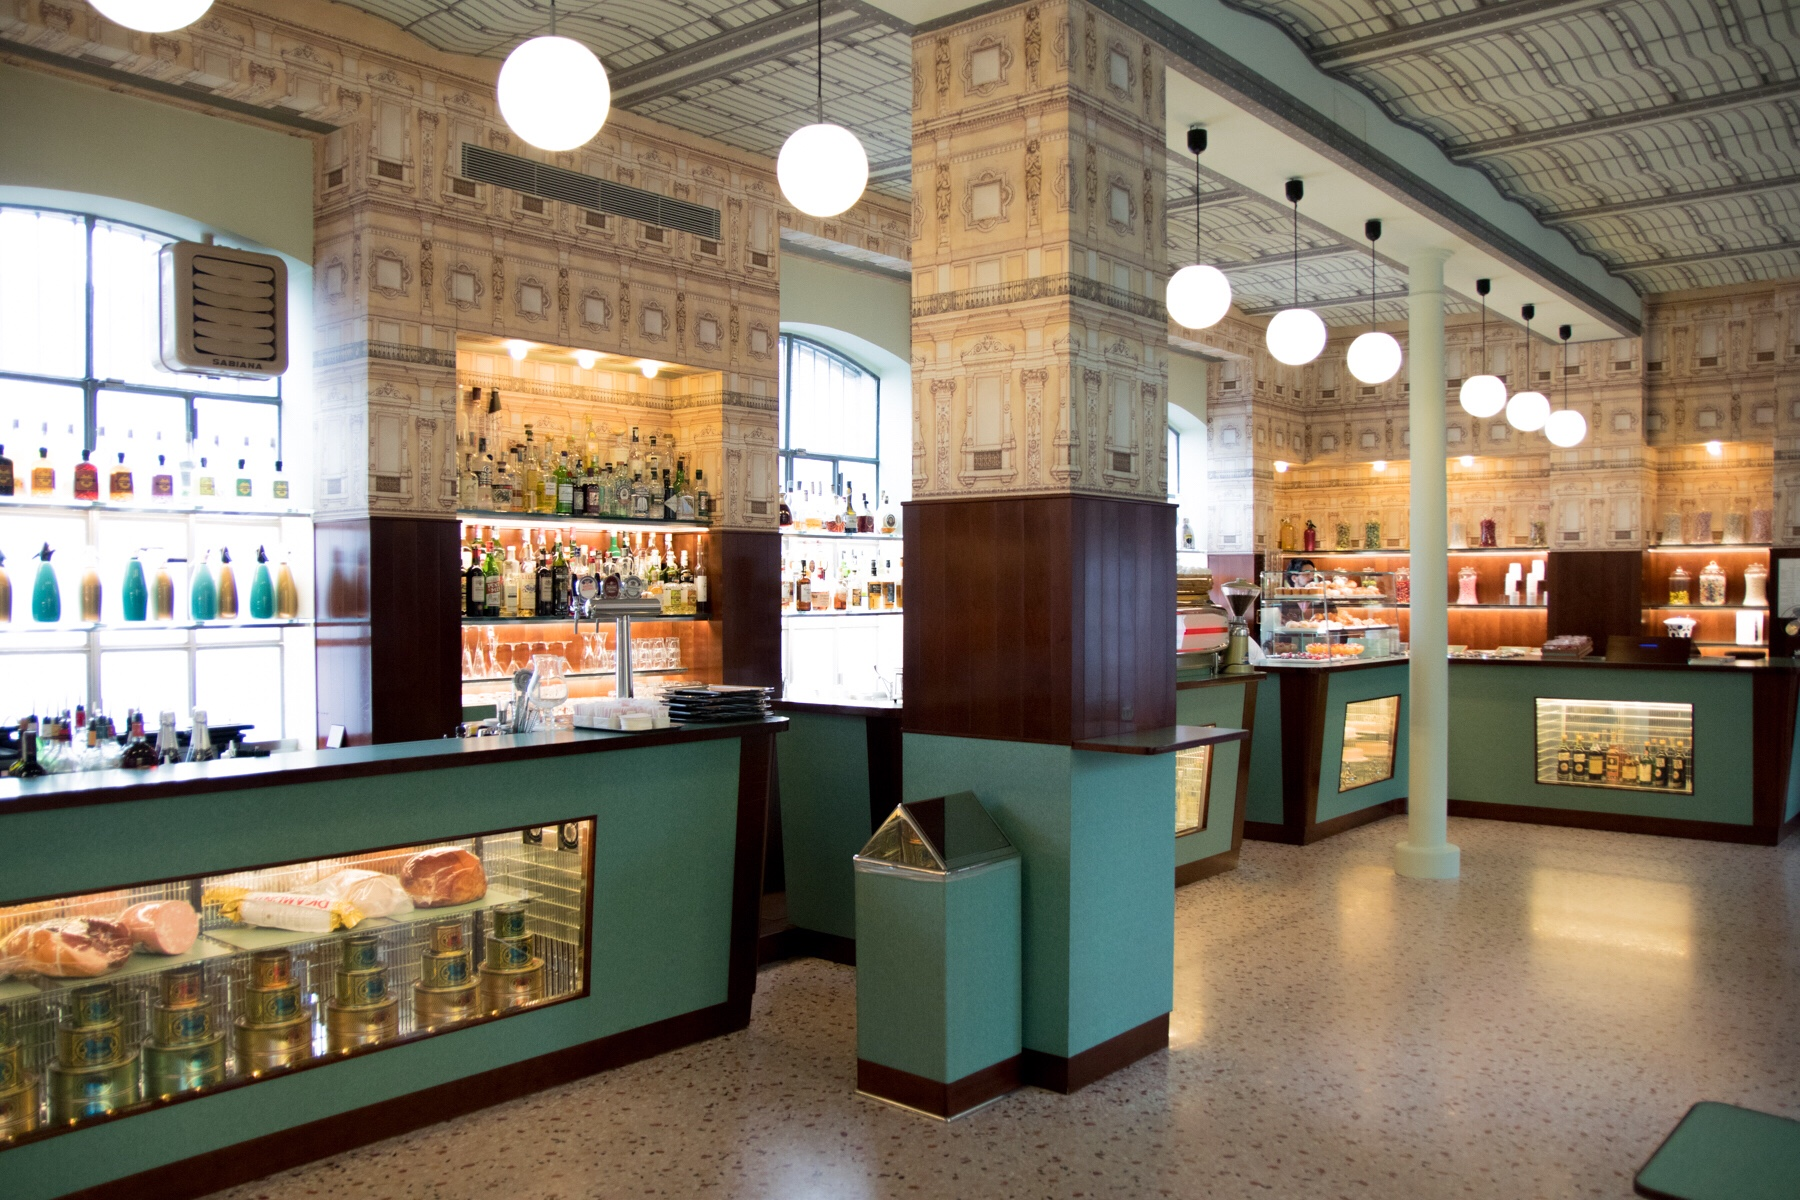 Bar Luce Wes Anderson Interior